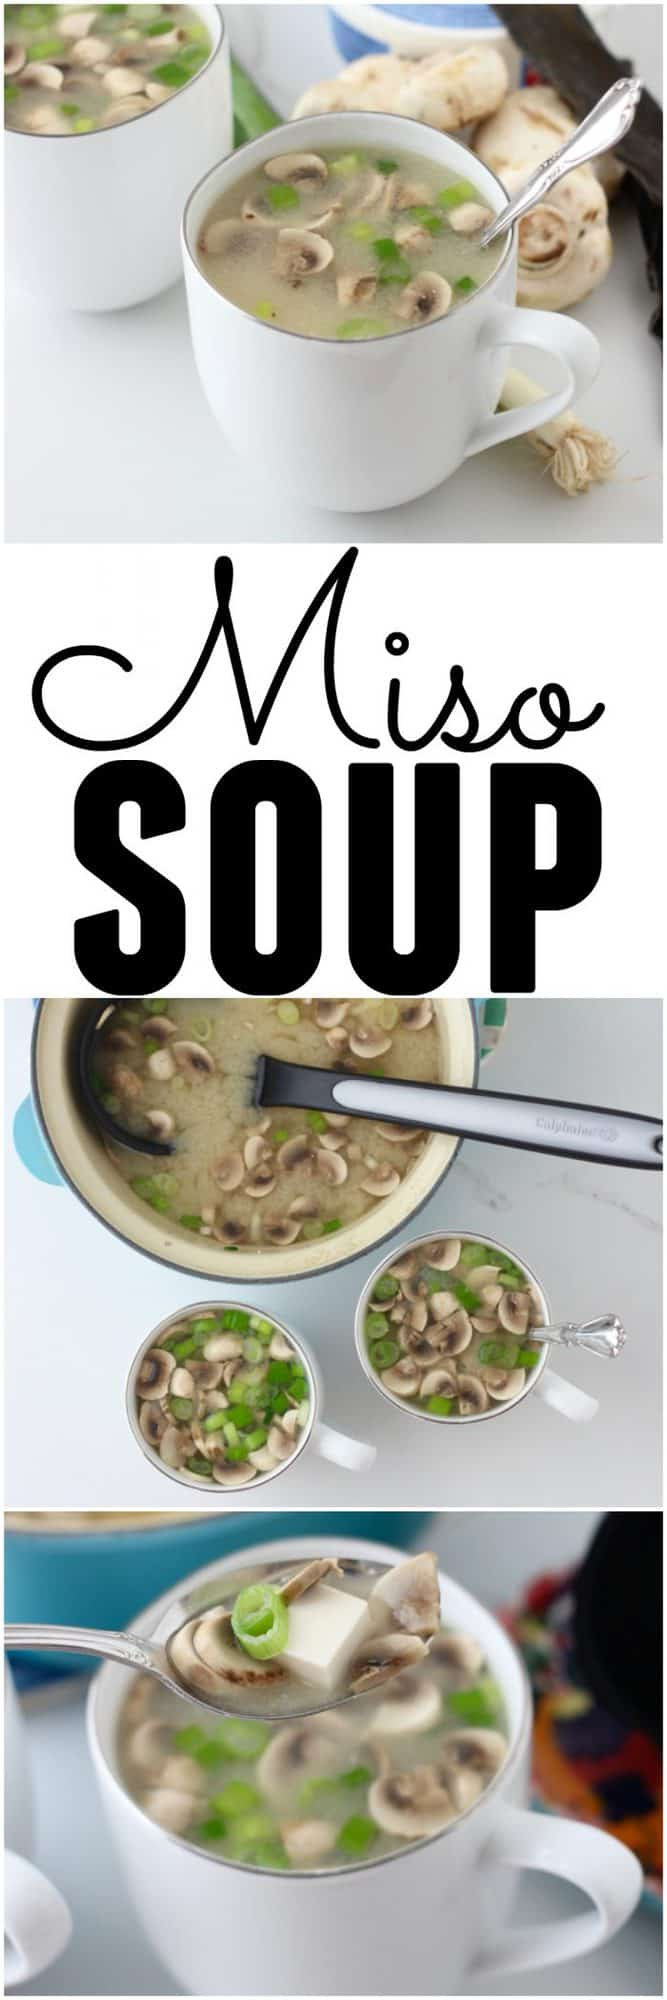 collage of miso soup photos with text